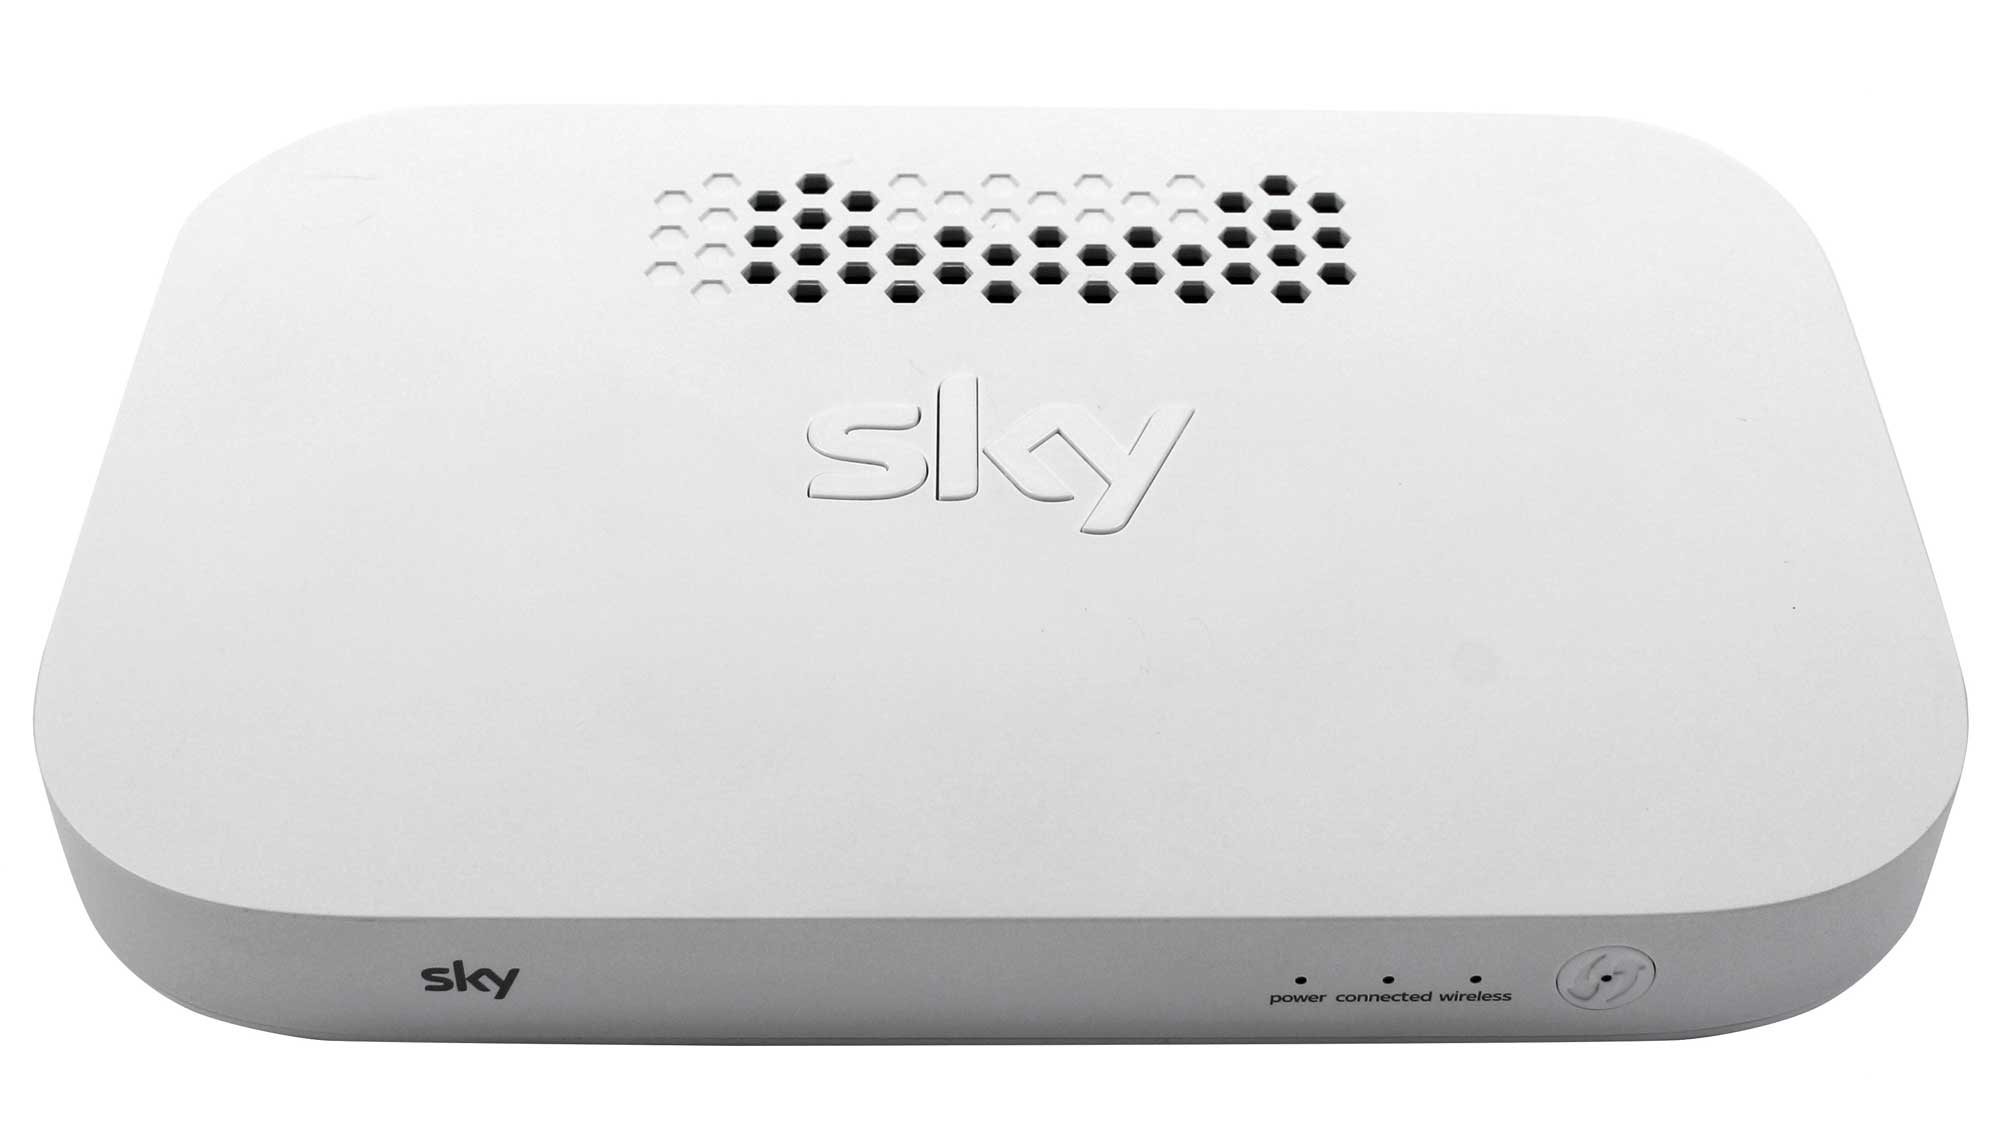 Sky wireless connector slow download